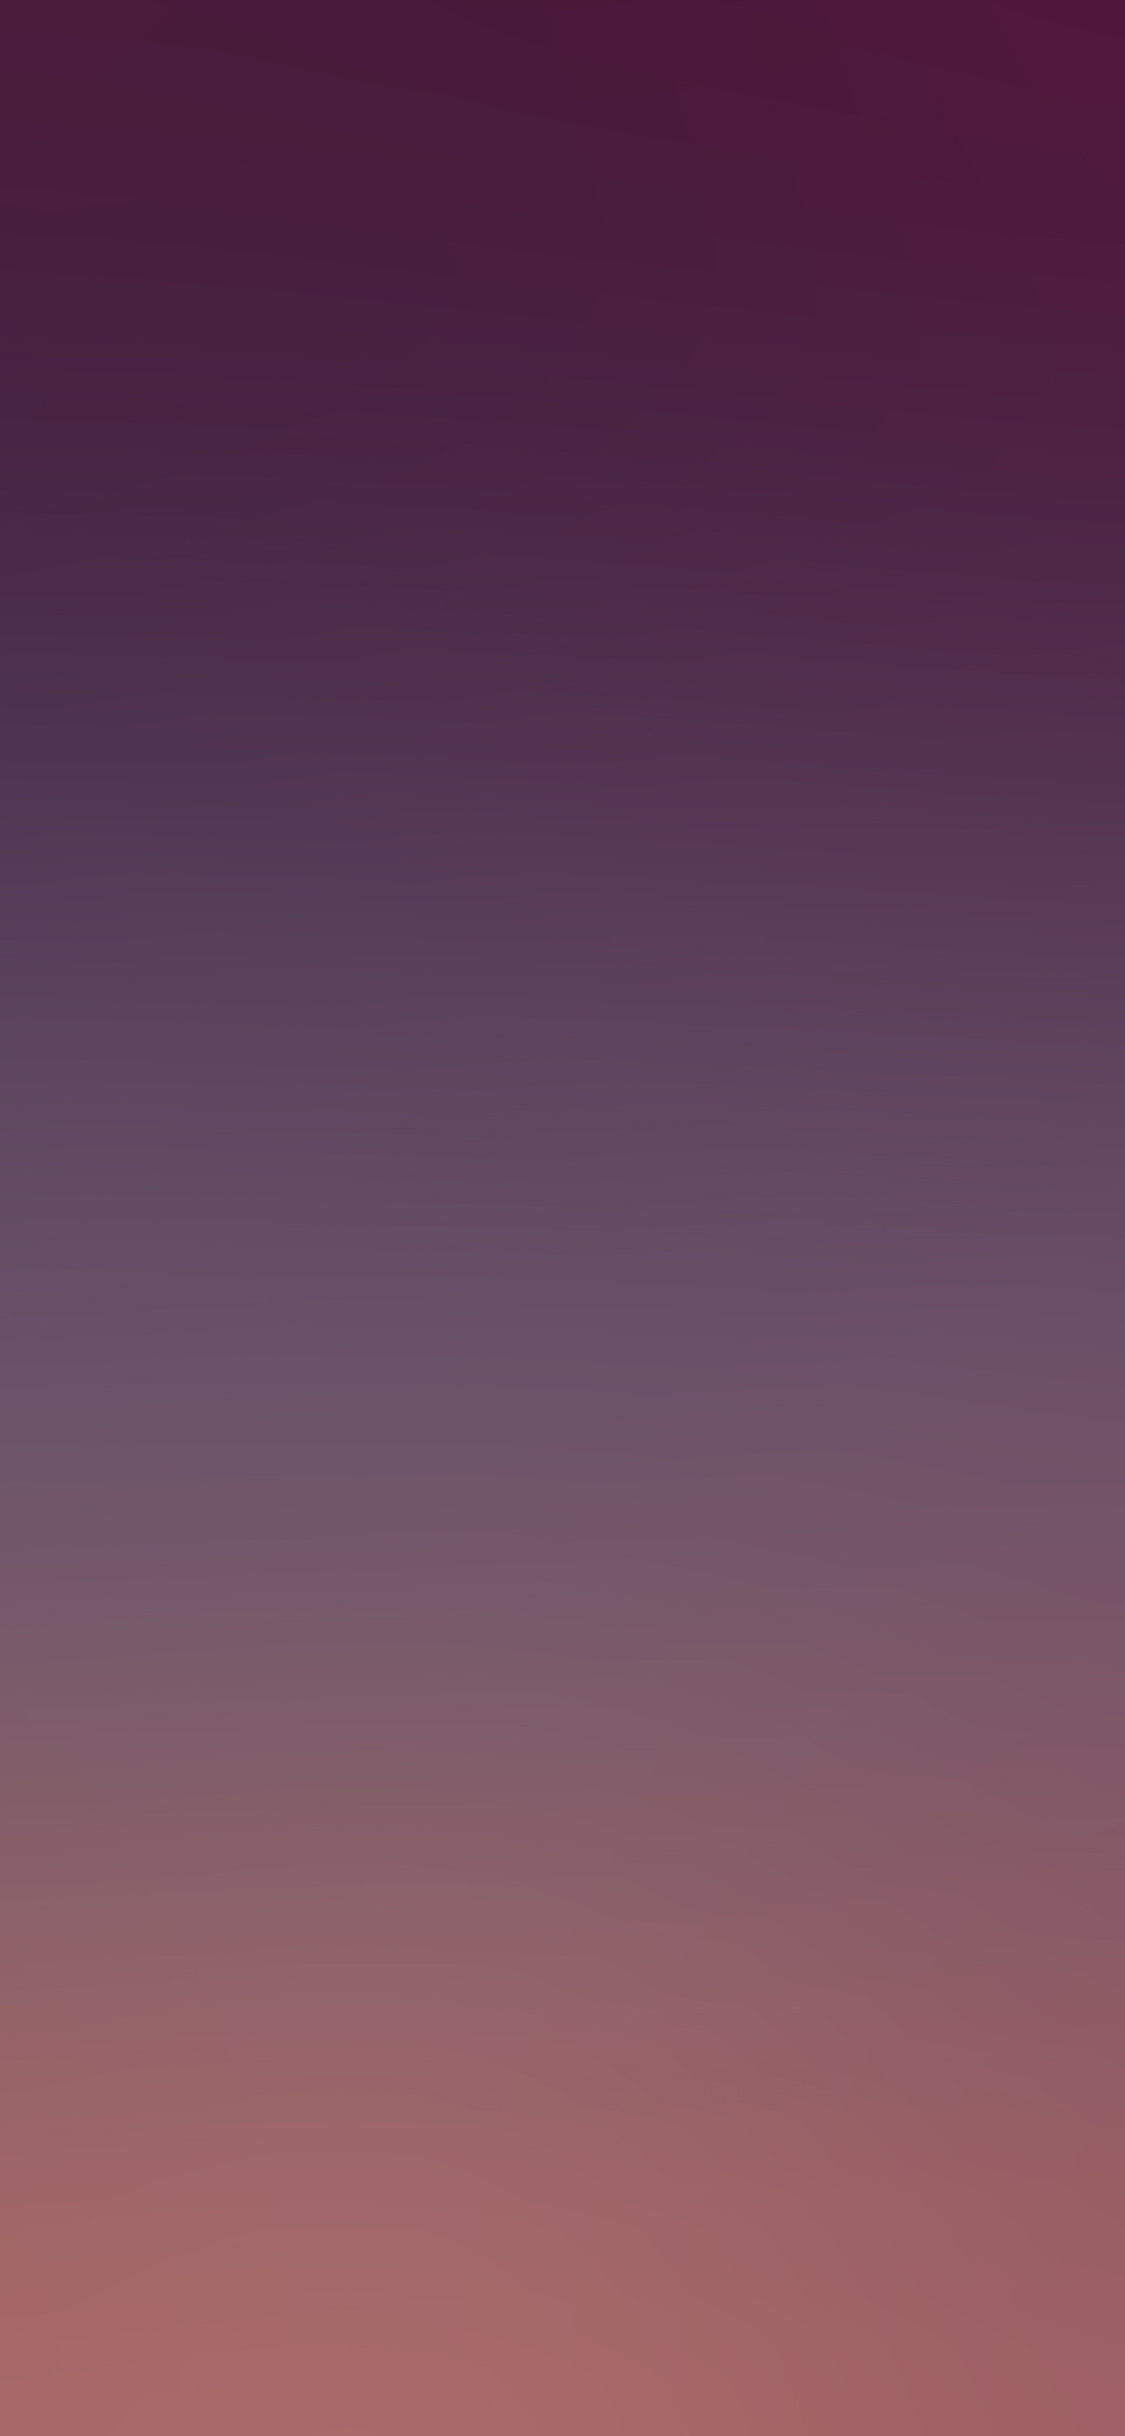 iPhoneXpapers.com-Apple-iPhone-wallpaper-si95-purple-life-dear-my-friends-gradation-blur